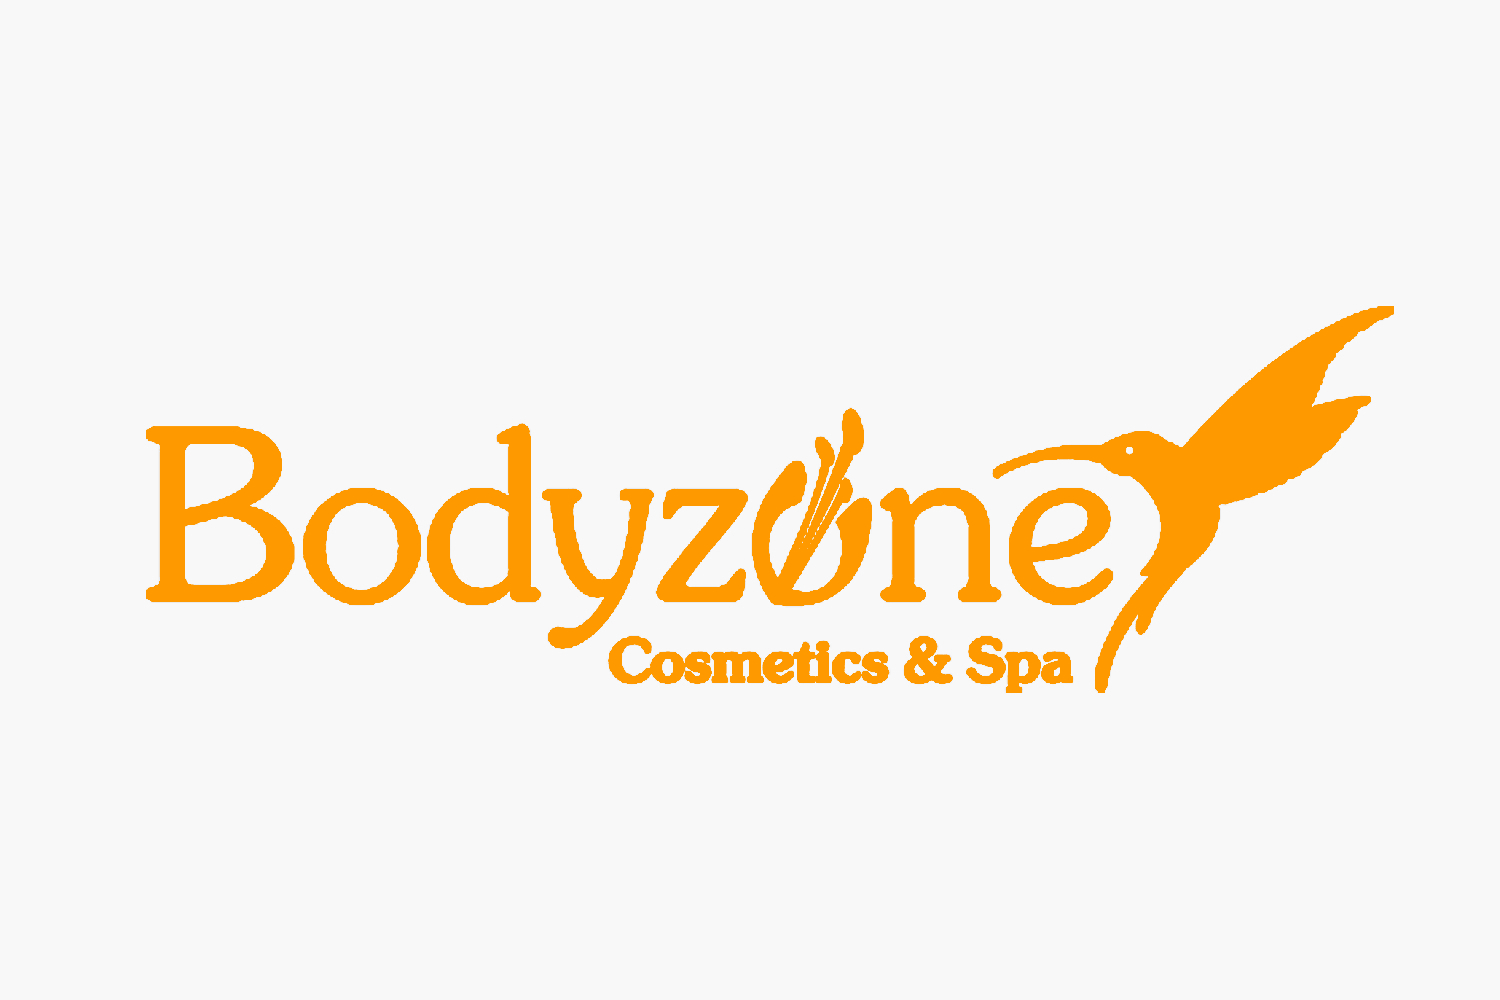 Bodyzone-Cosmetics-Spa Basel.jpg